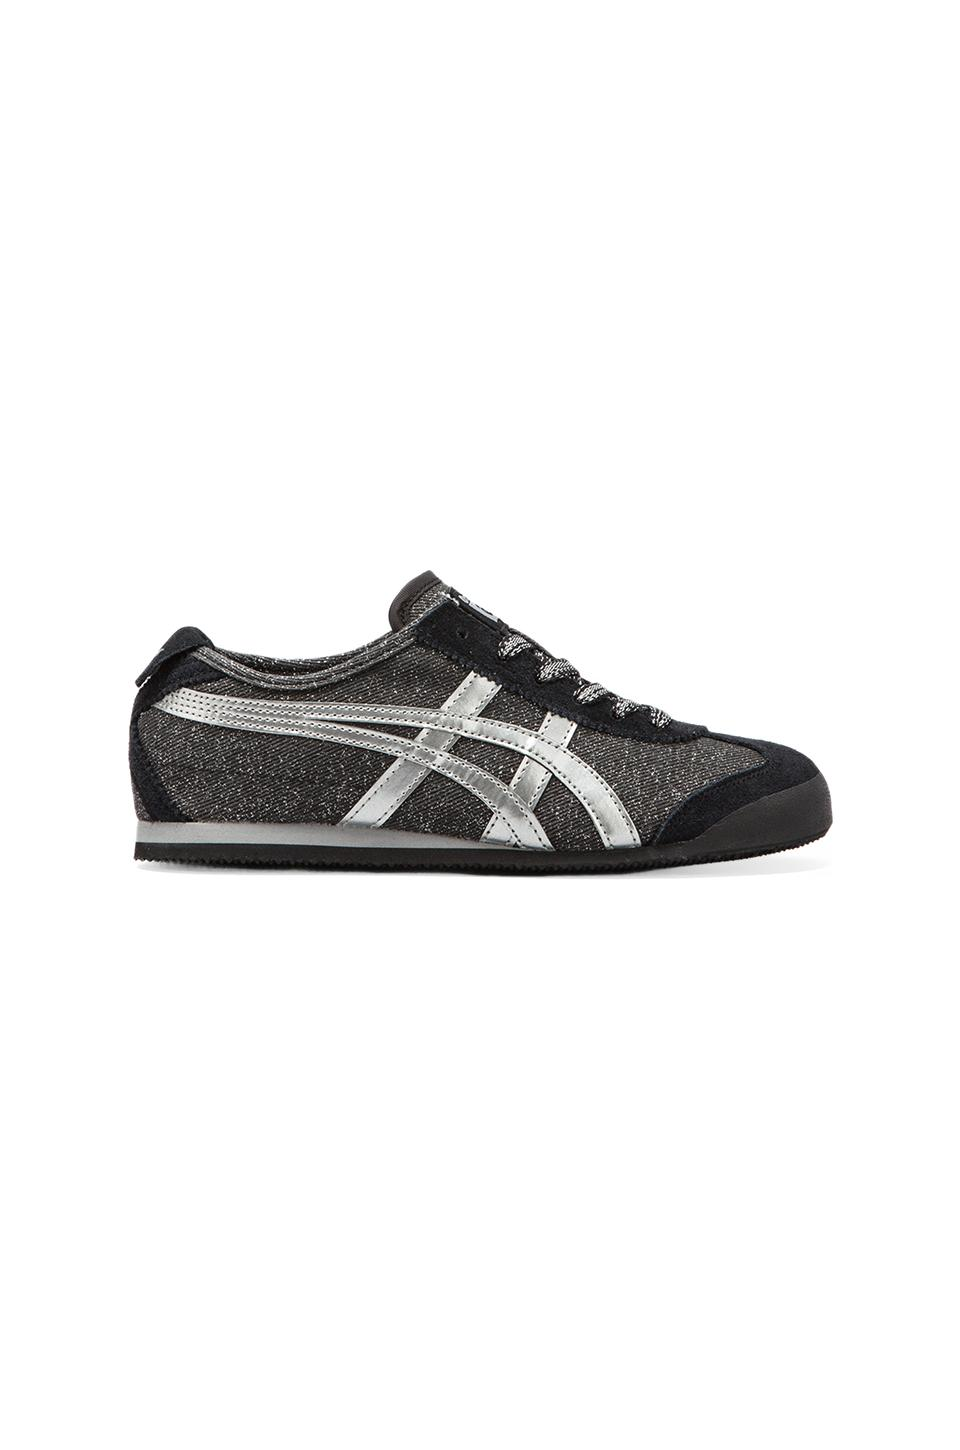 Onitsuka Tiger Mexico 66 in Black Glitter